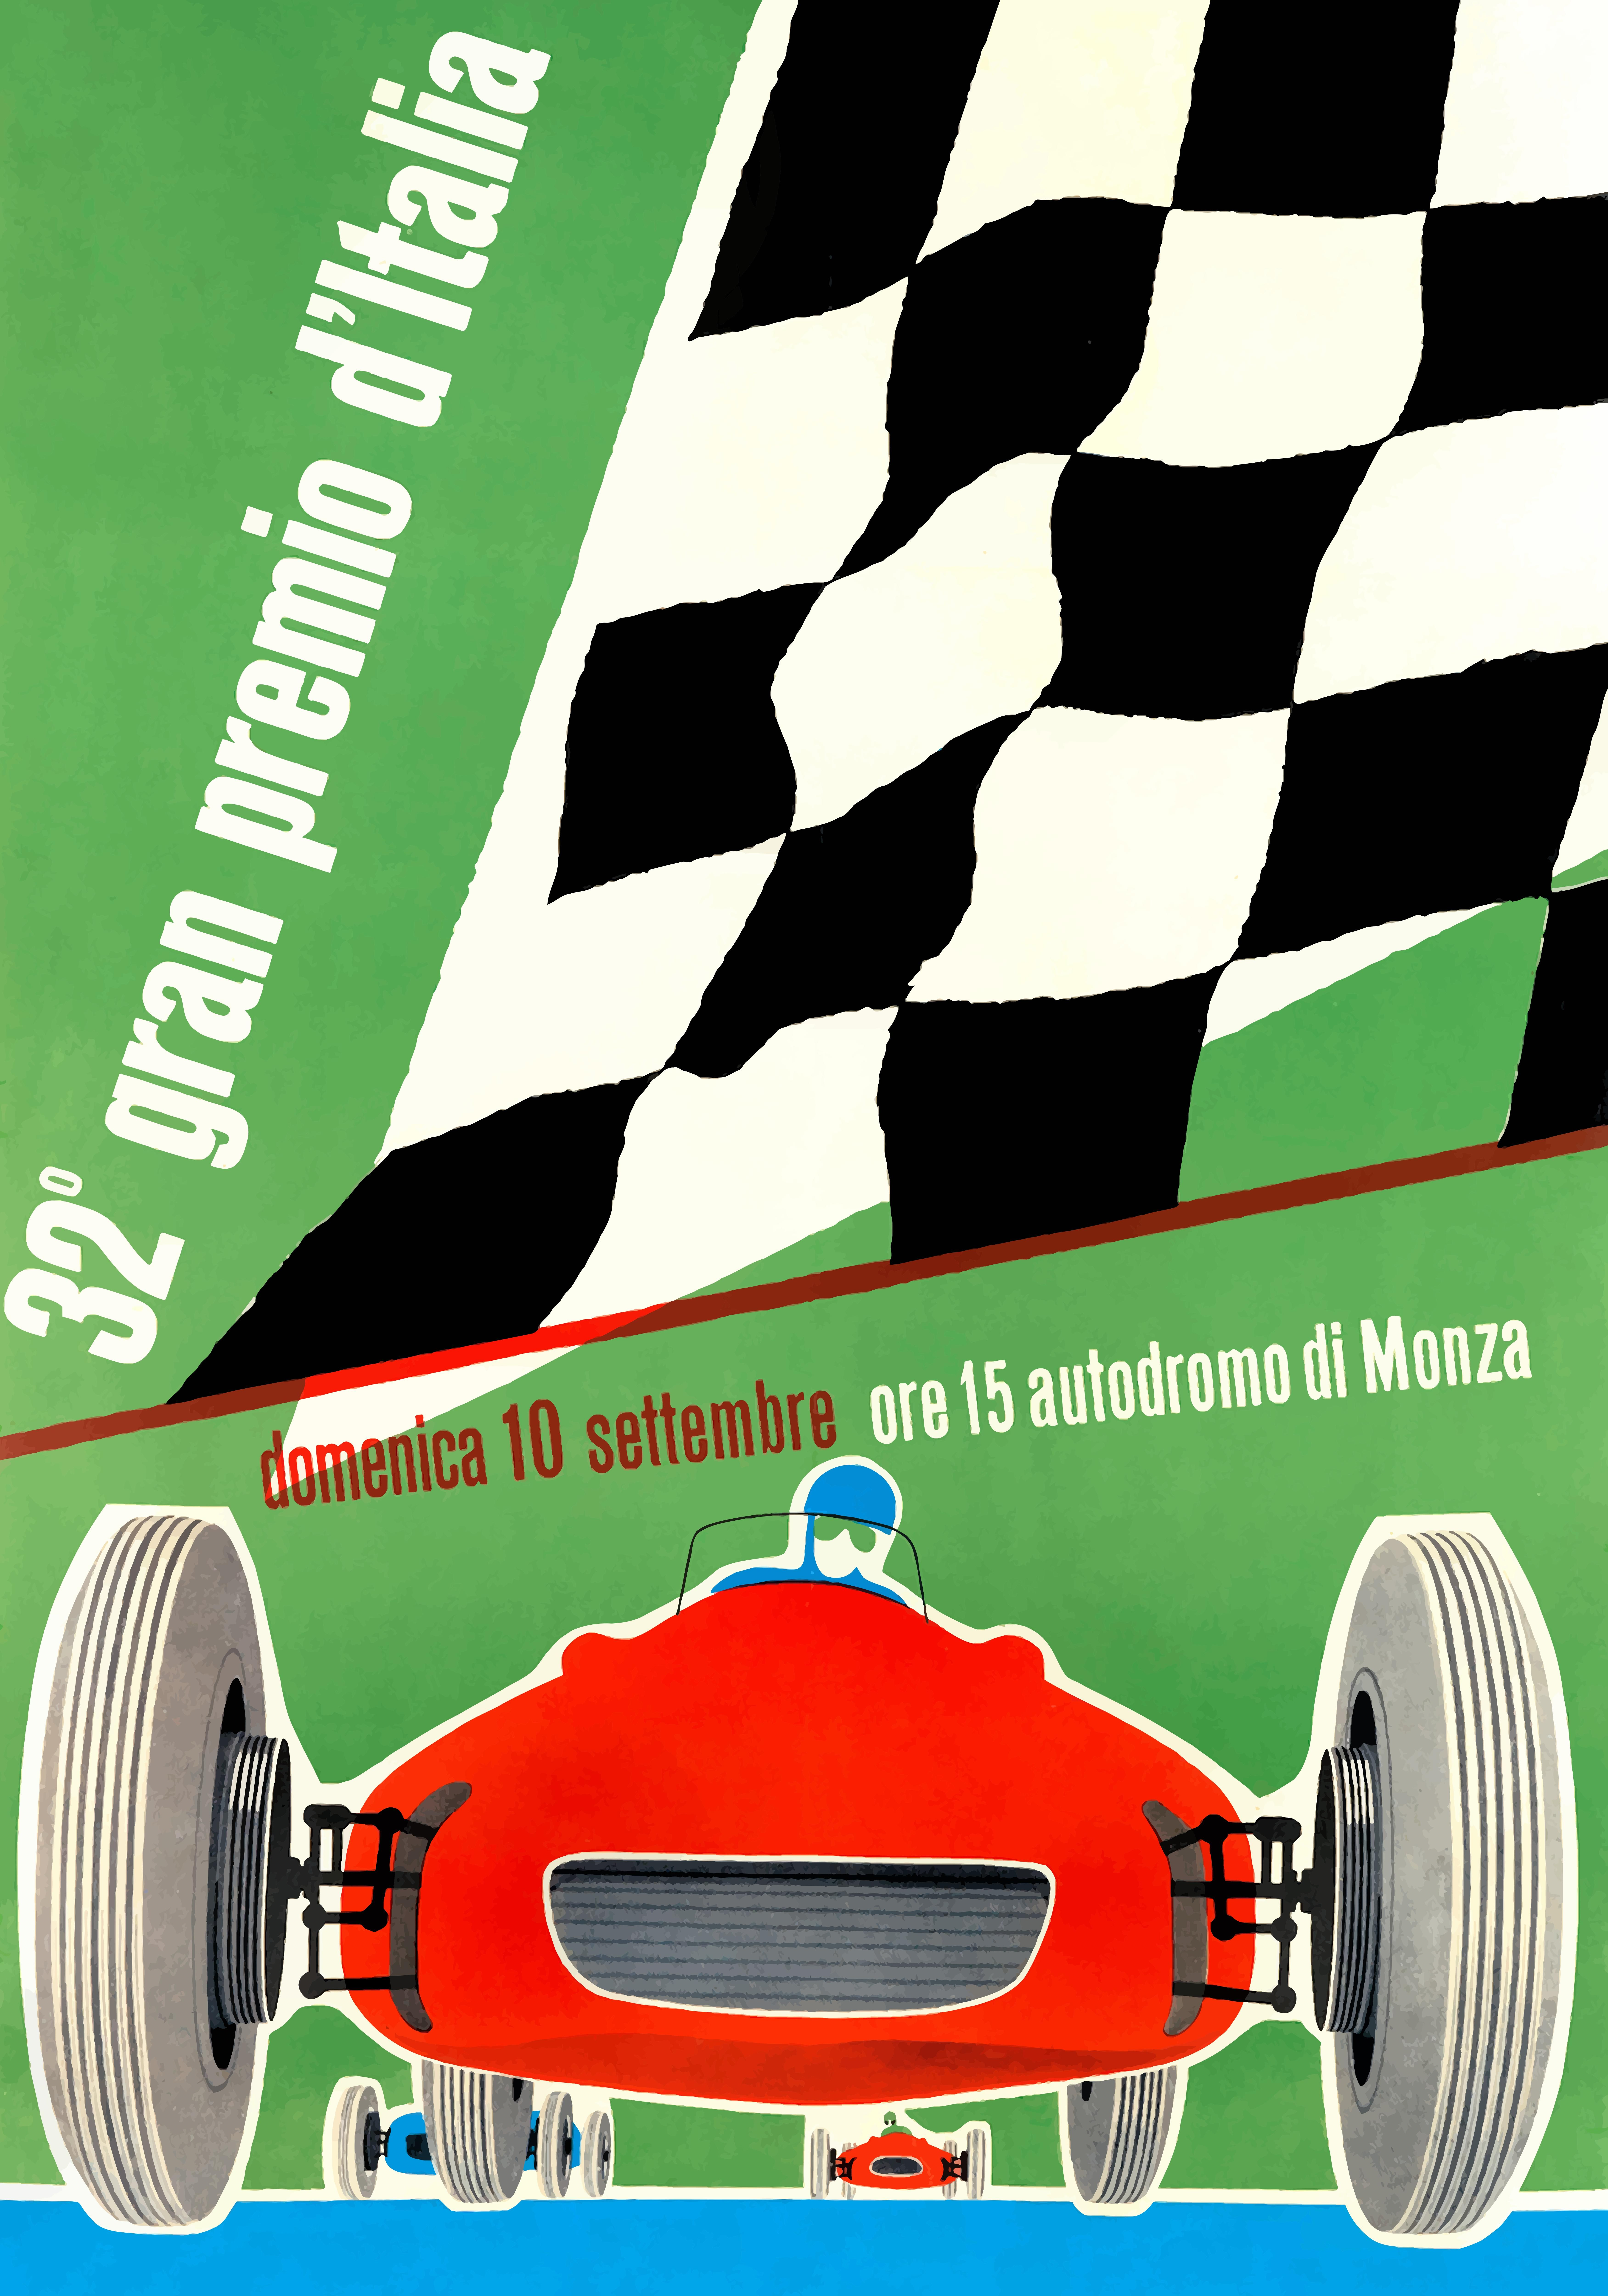 1961 Italian Grand Prix Advertising Poster By Retro Graphics In 2020 Vintage Racing Poster Grand Prix Posters Italian Grand Prix